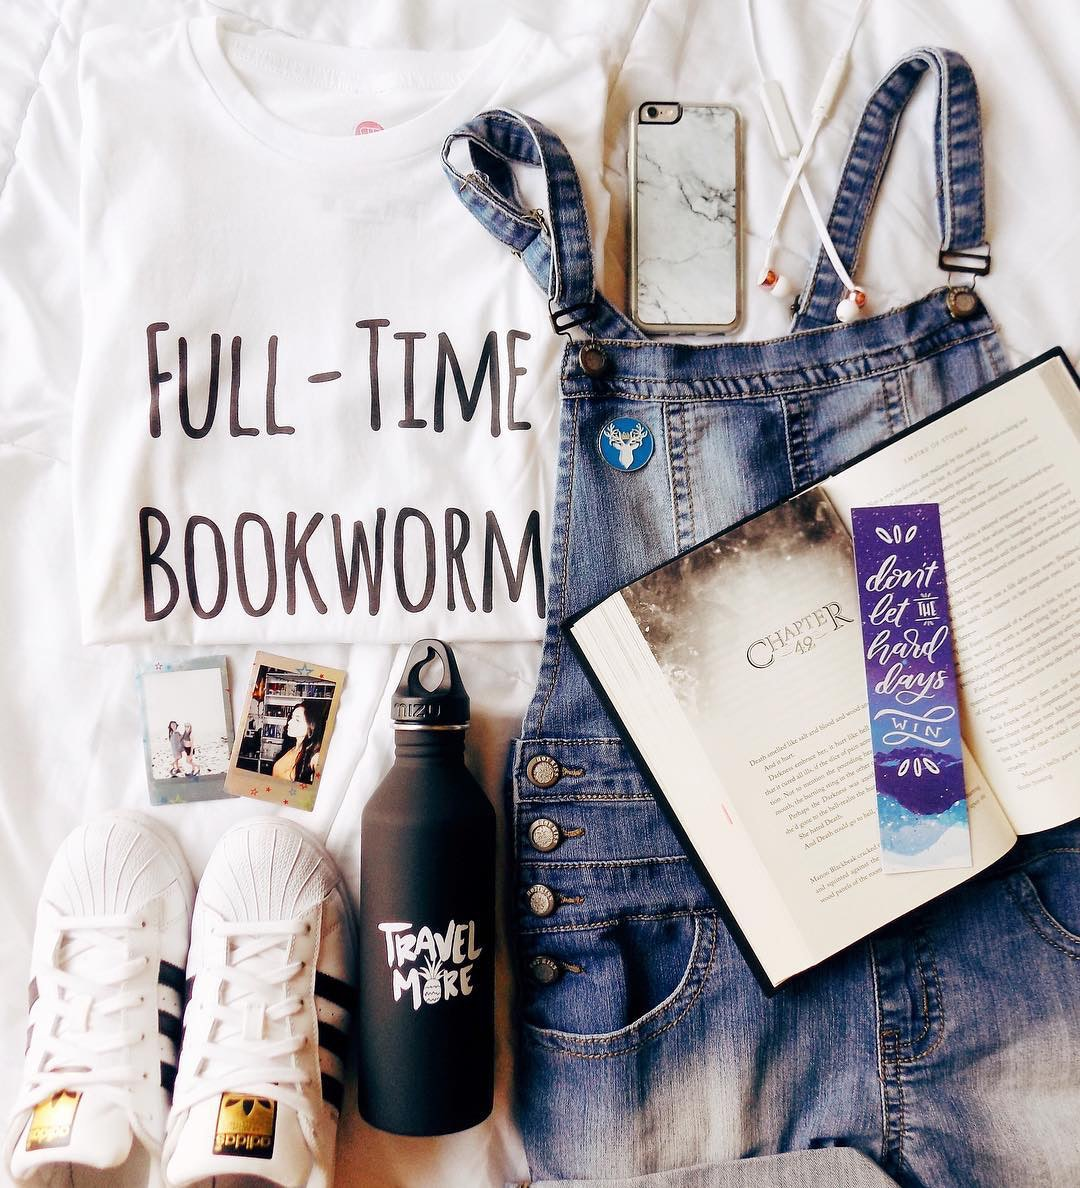 11 small literary gifts to show the booklover in your life how much you care